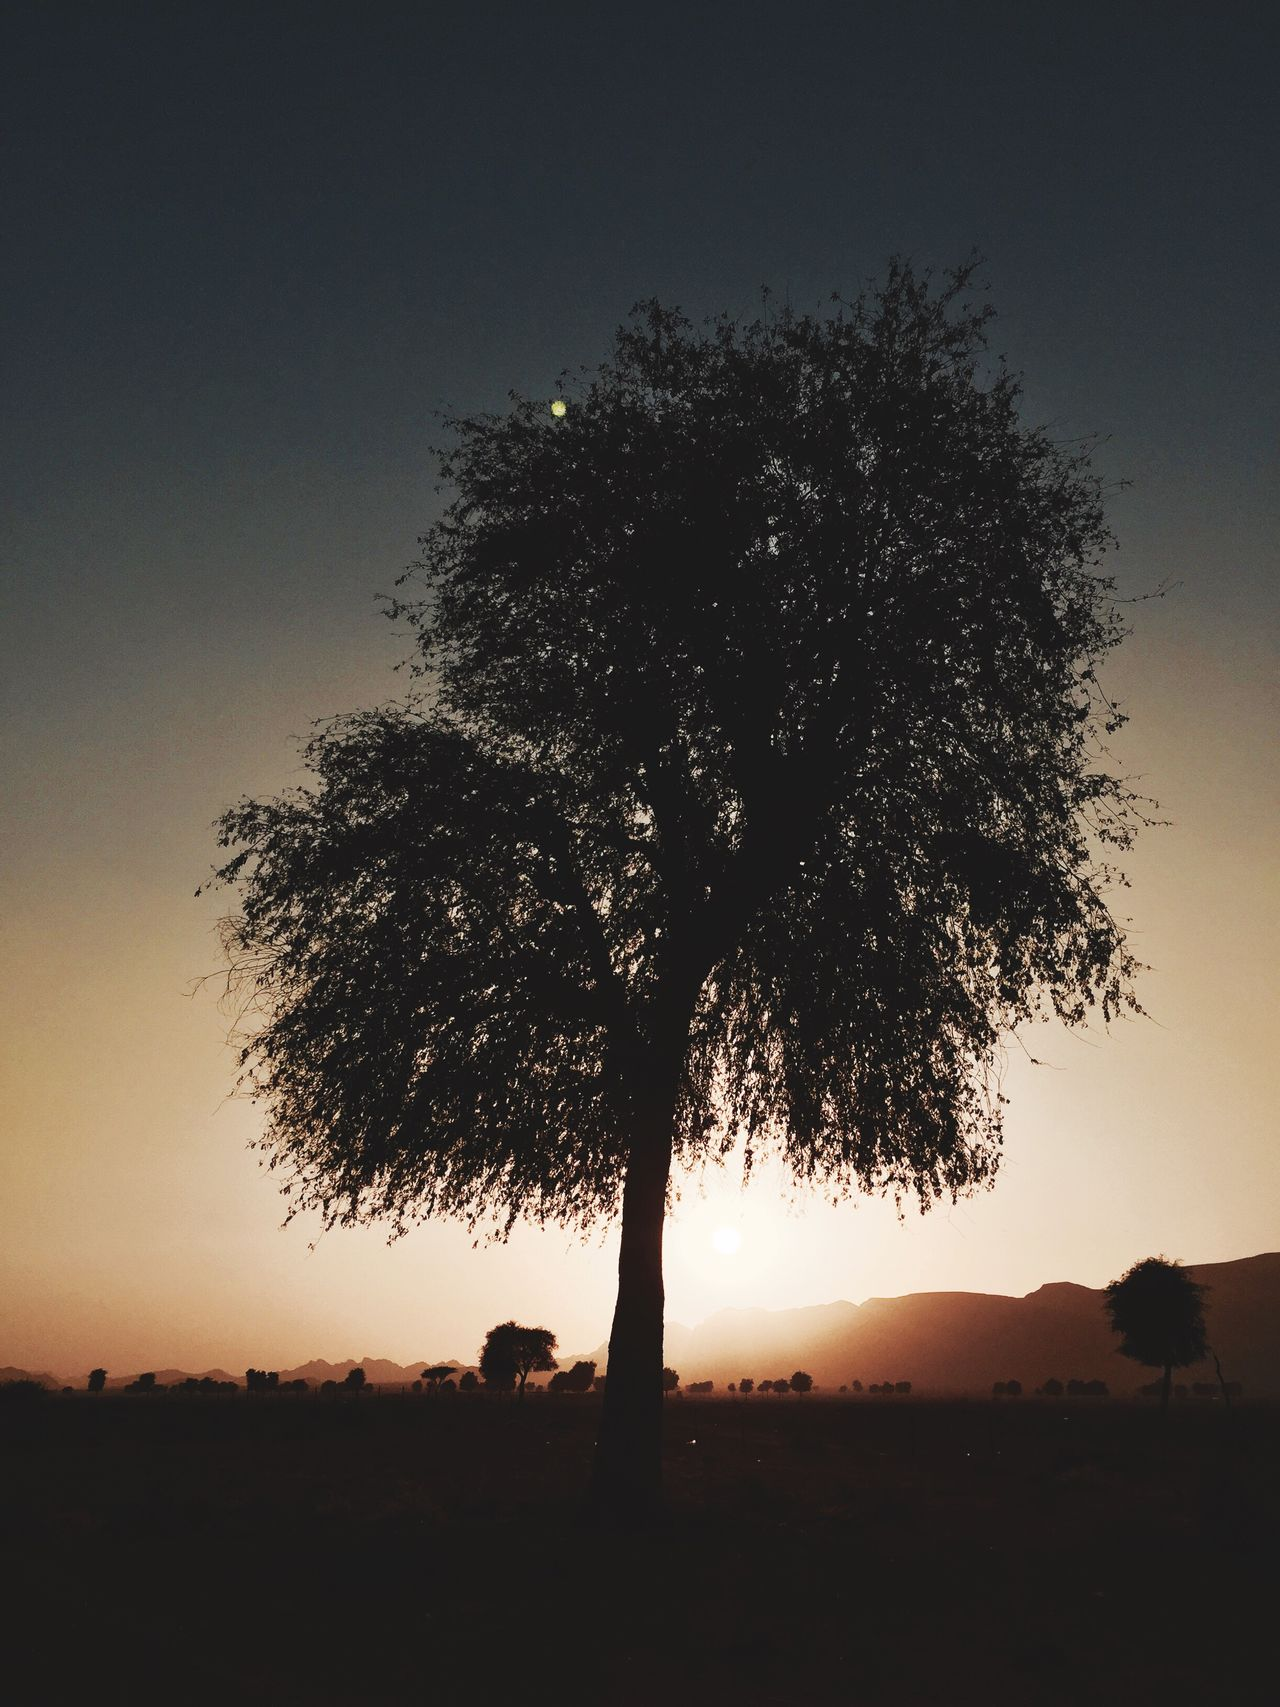 Tree Nature Sunset Beauty In Nature Tranquil Scene No People Tranquility Scenics Landscape Outdoors Sky Growth Silhouette Lone Single Tree Isolated Day